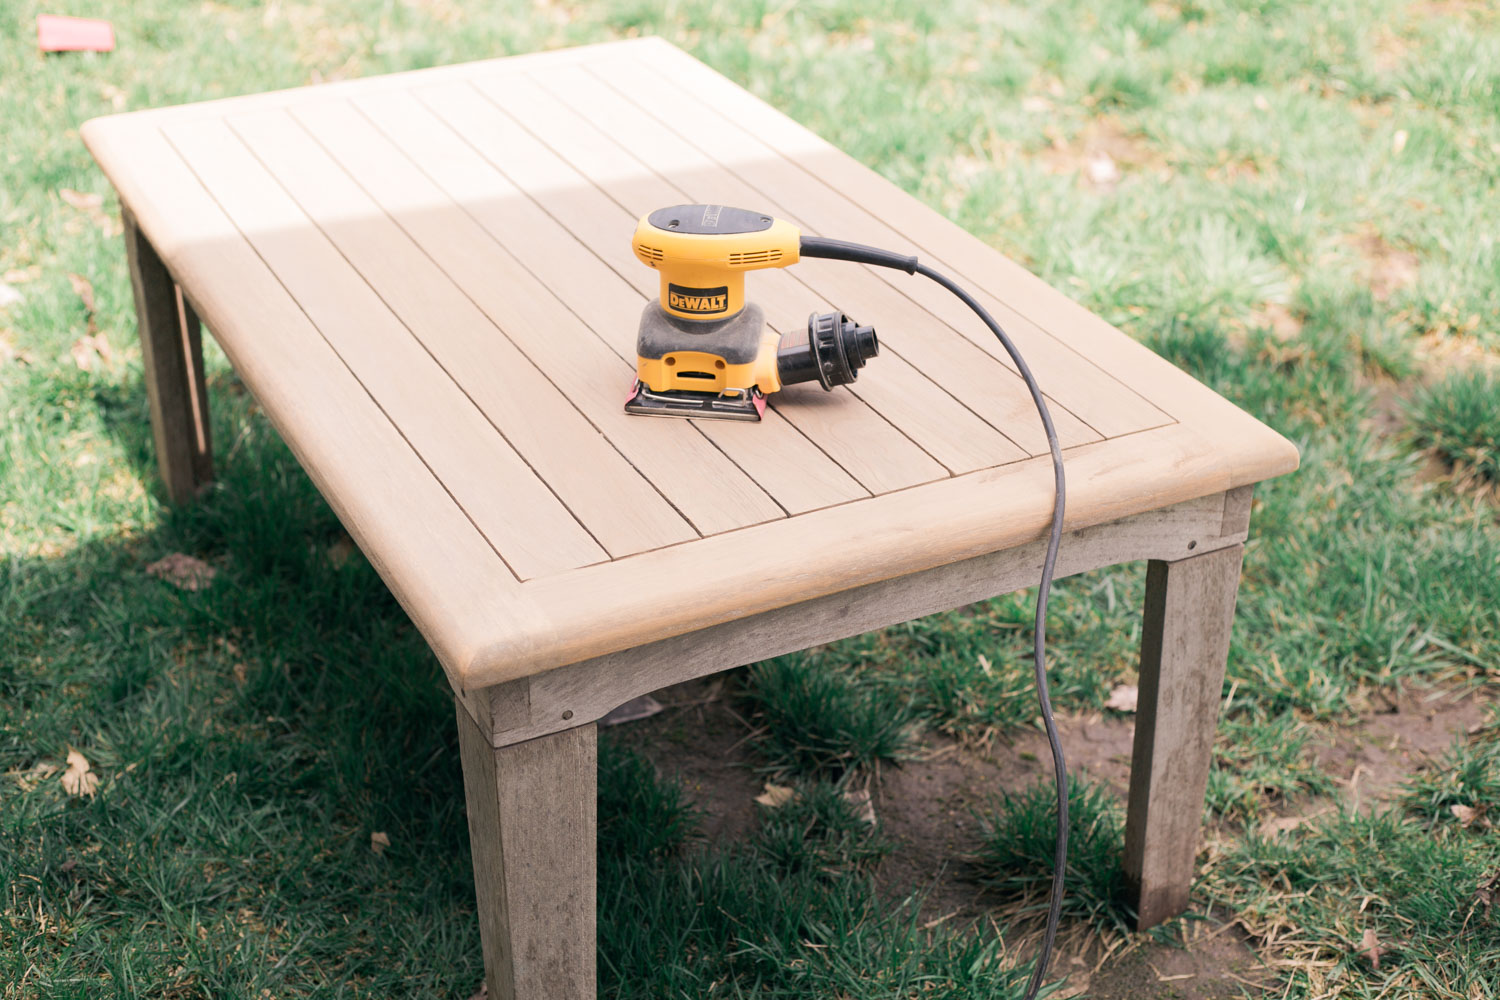 10 Easy Steps To Restoring Teak Furniture From Looking Weathered To Brand New